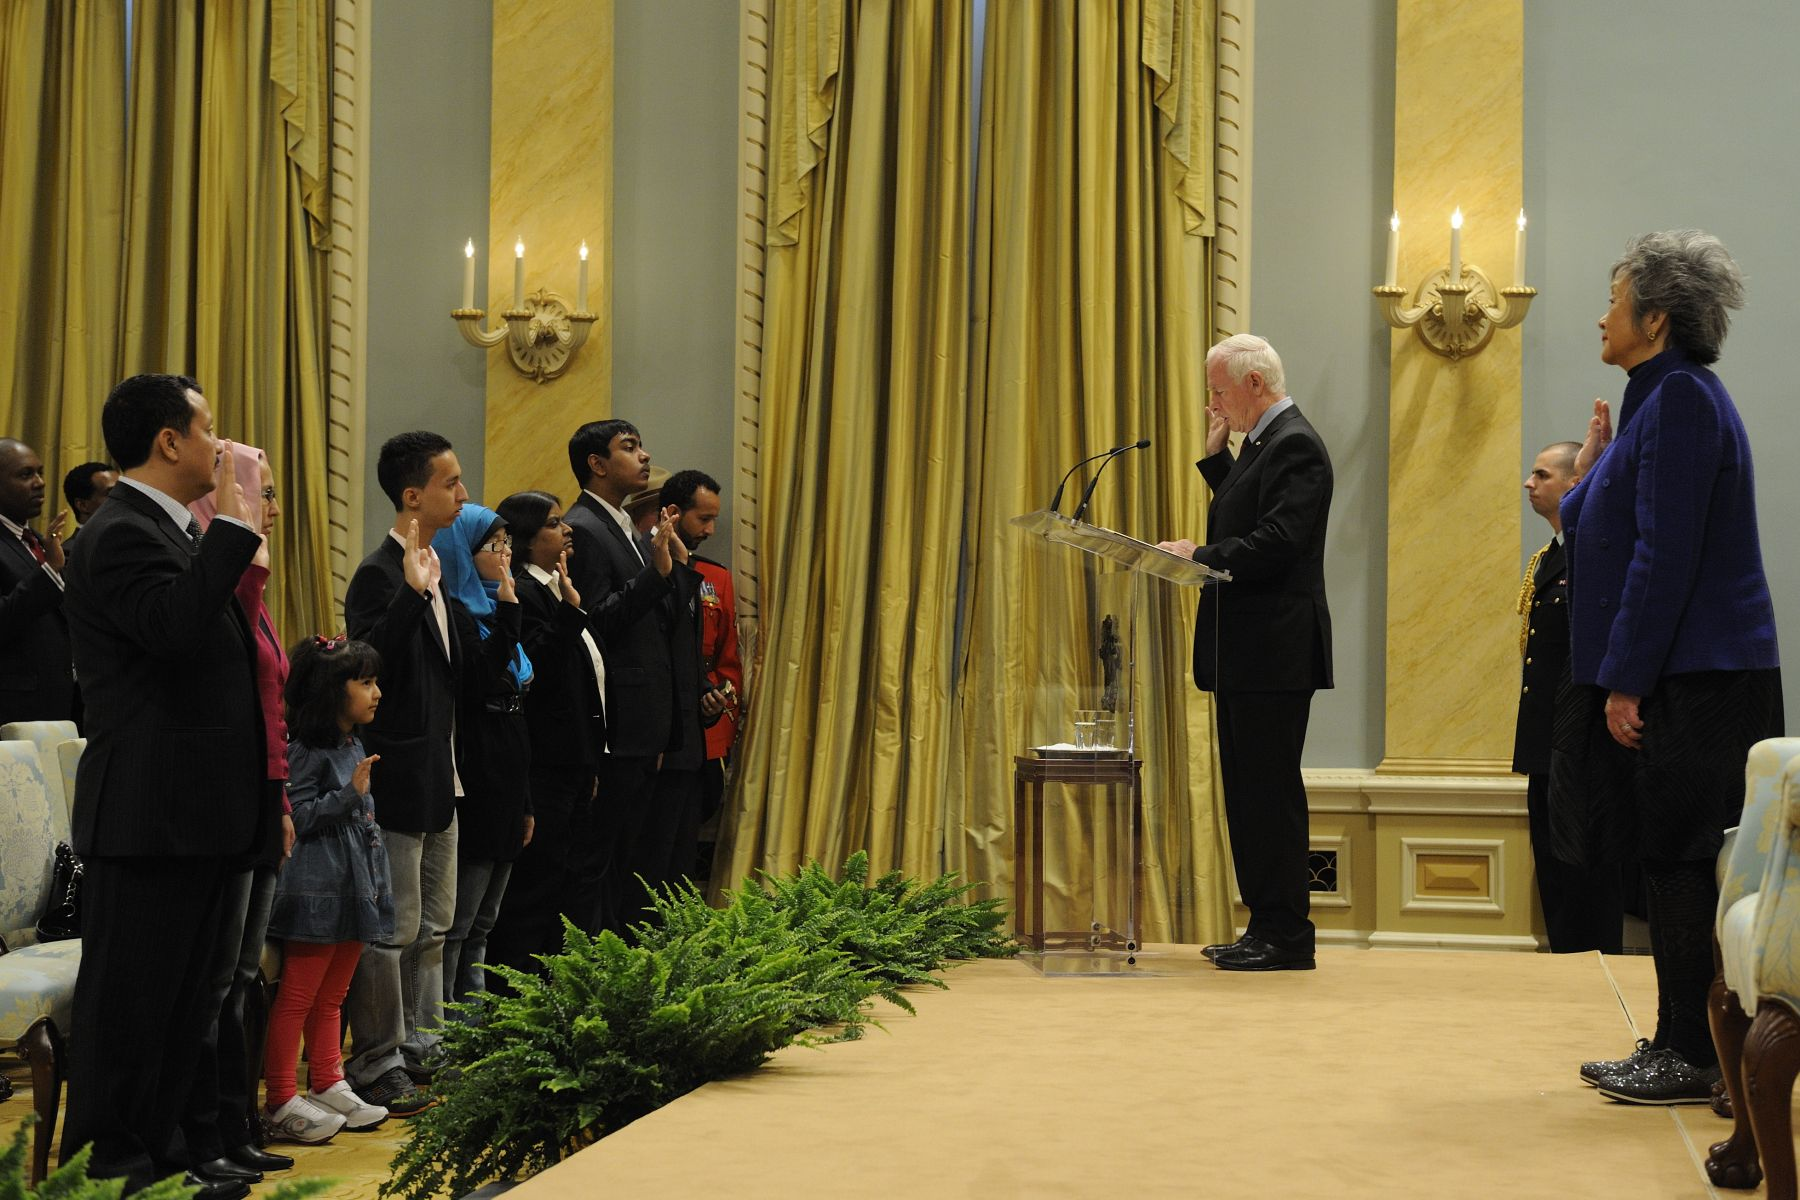 His Excellency was the presiding official administering the Oath of Citizenship and conferred citizenship certificates to 54 new Canadians from 29 countries. He was joined by the Right Honourable Adrienne Clarkson, former governor general of Canada.